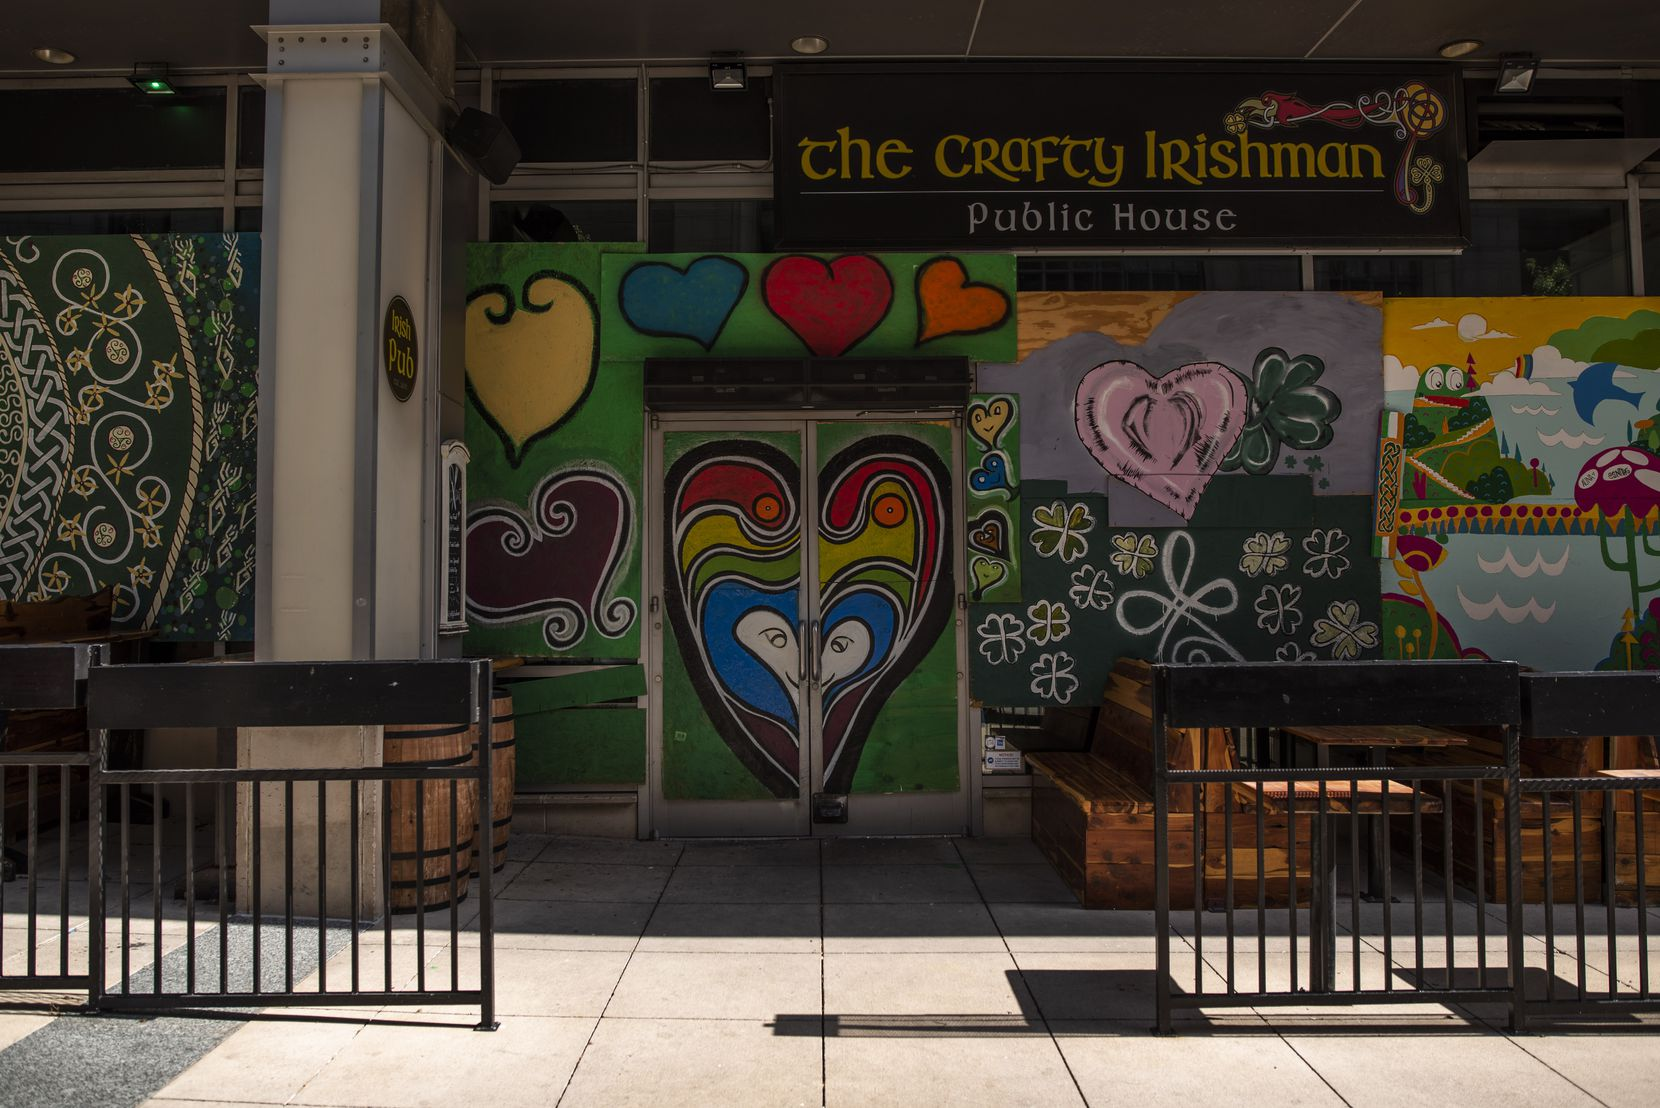 The Crafty Irishman restaurant on Main Street in downtown Dallas is boarded up and temporarily closed.